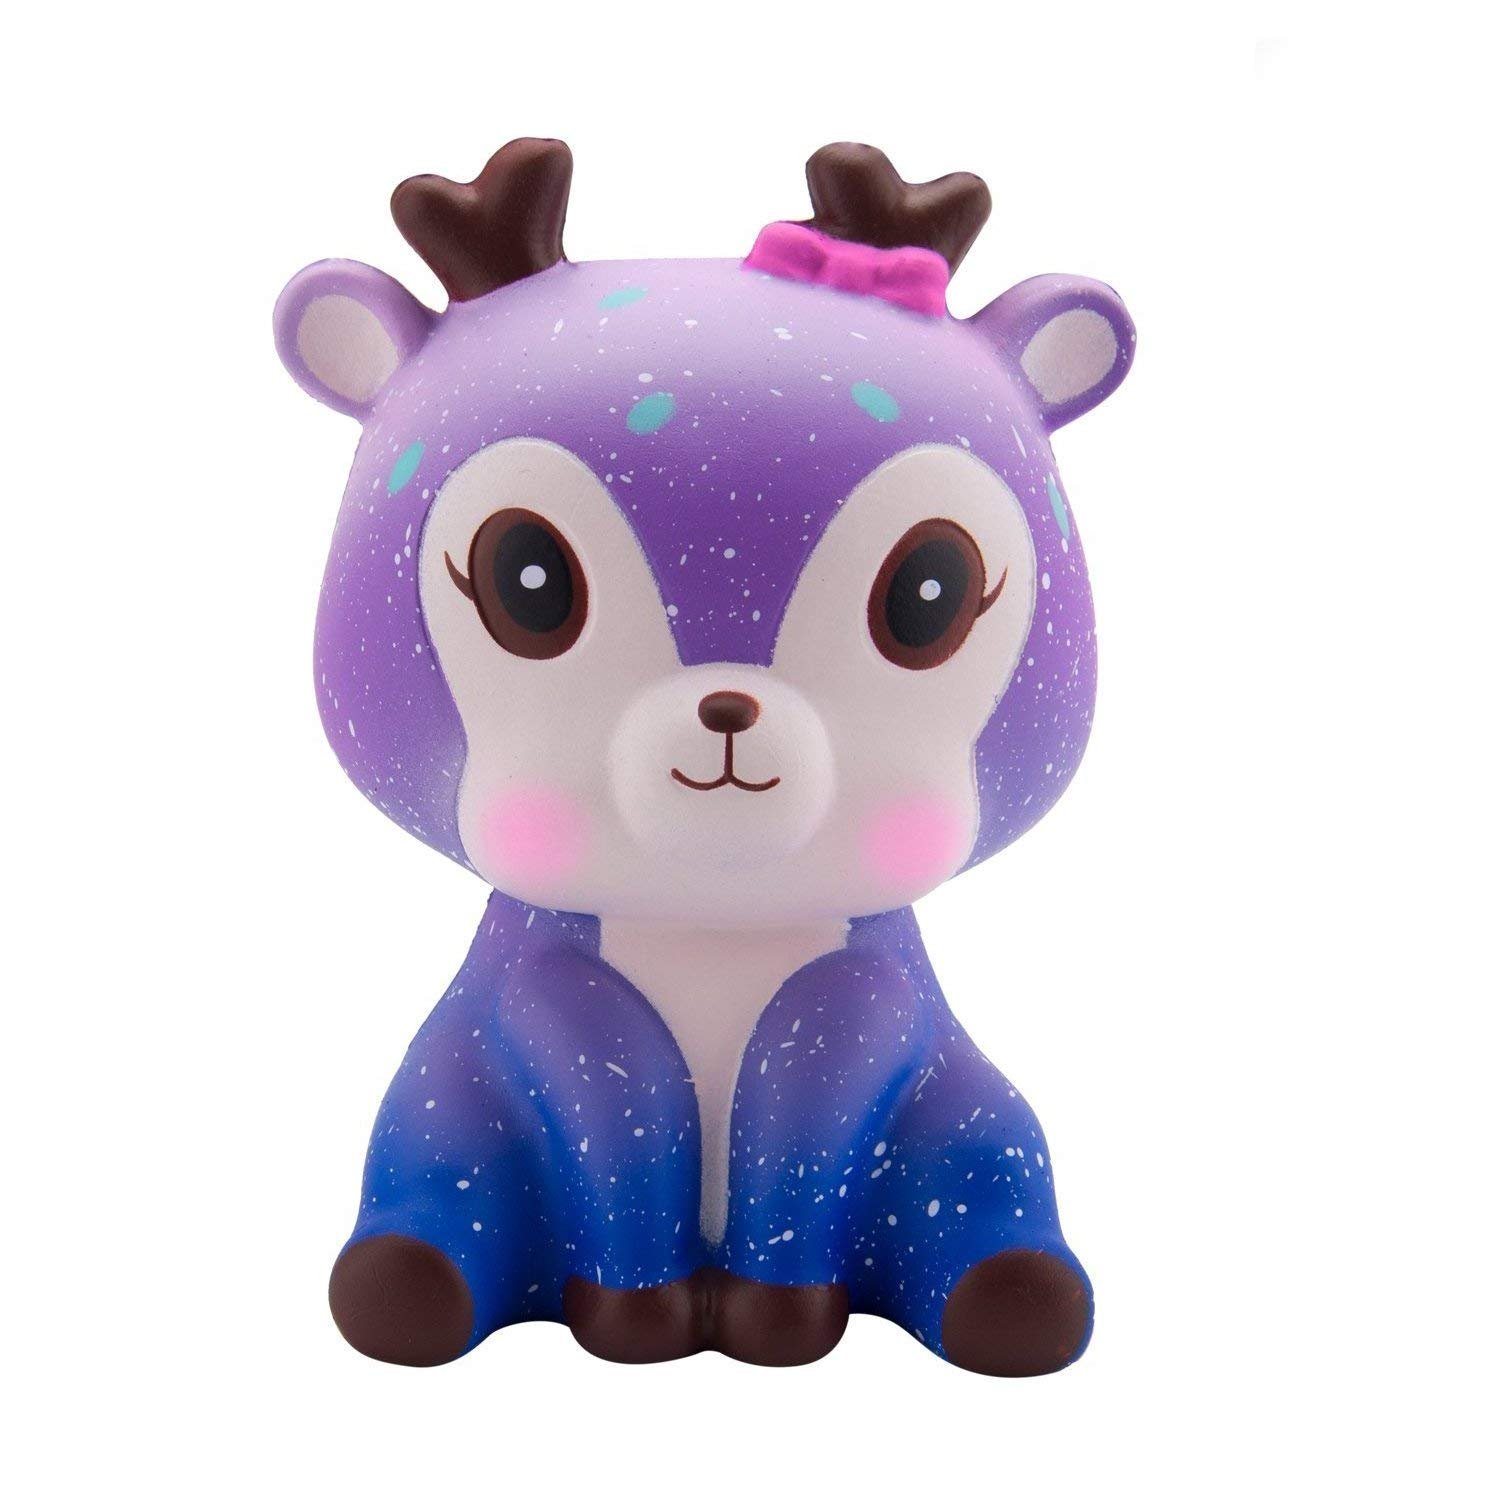 WATINC Kawaii Jumbo Starry Deer Squishy Slow Rising Sweet Scented Vent Charms Kid Toy Hand Toy, Stress Relief Toy, Decorative Props Doll Gift Fun Large(Starry Deer)